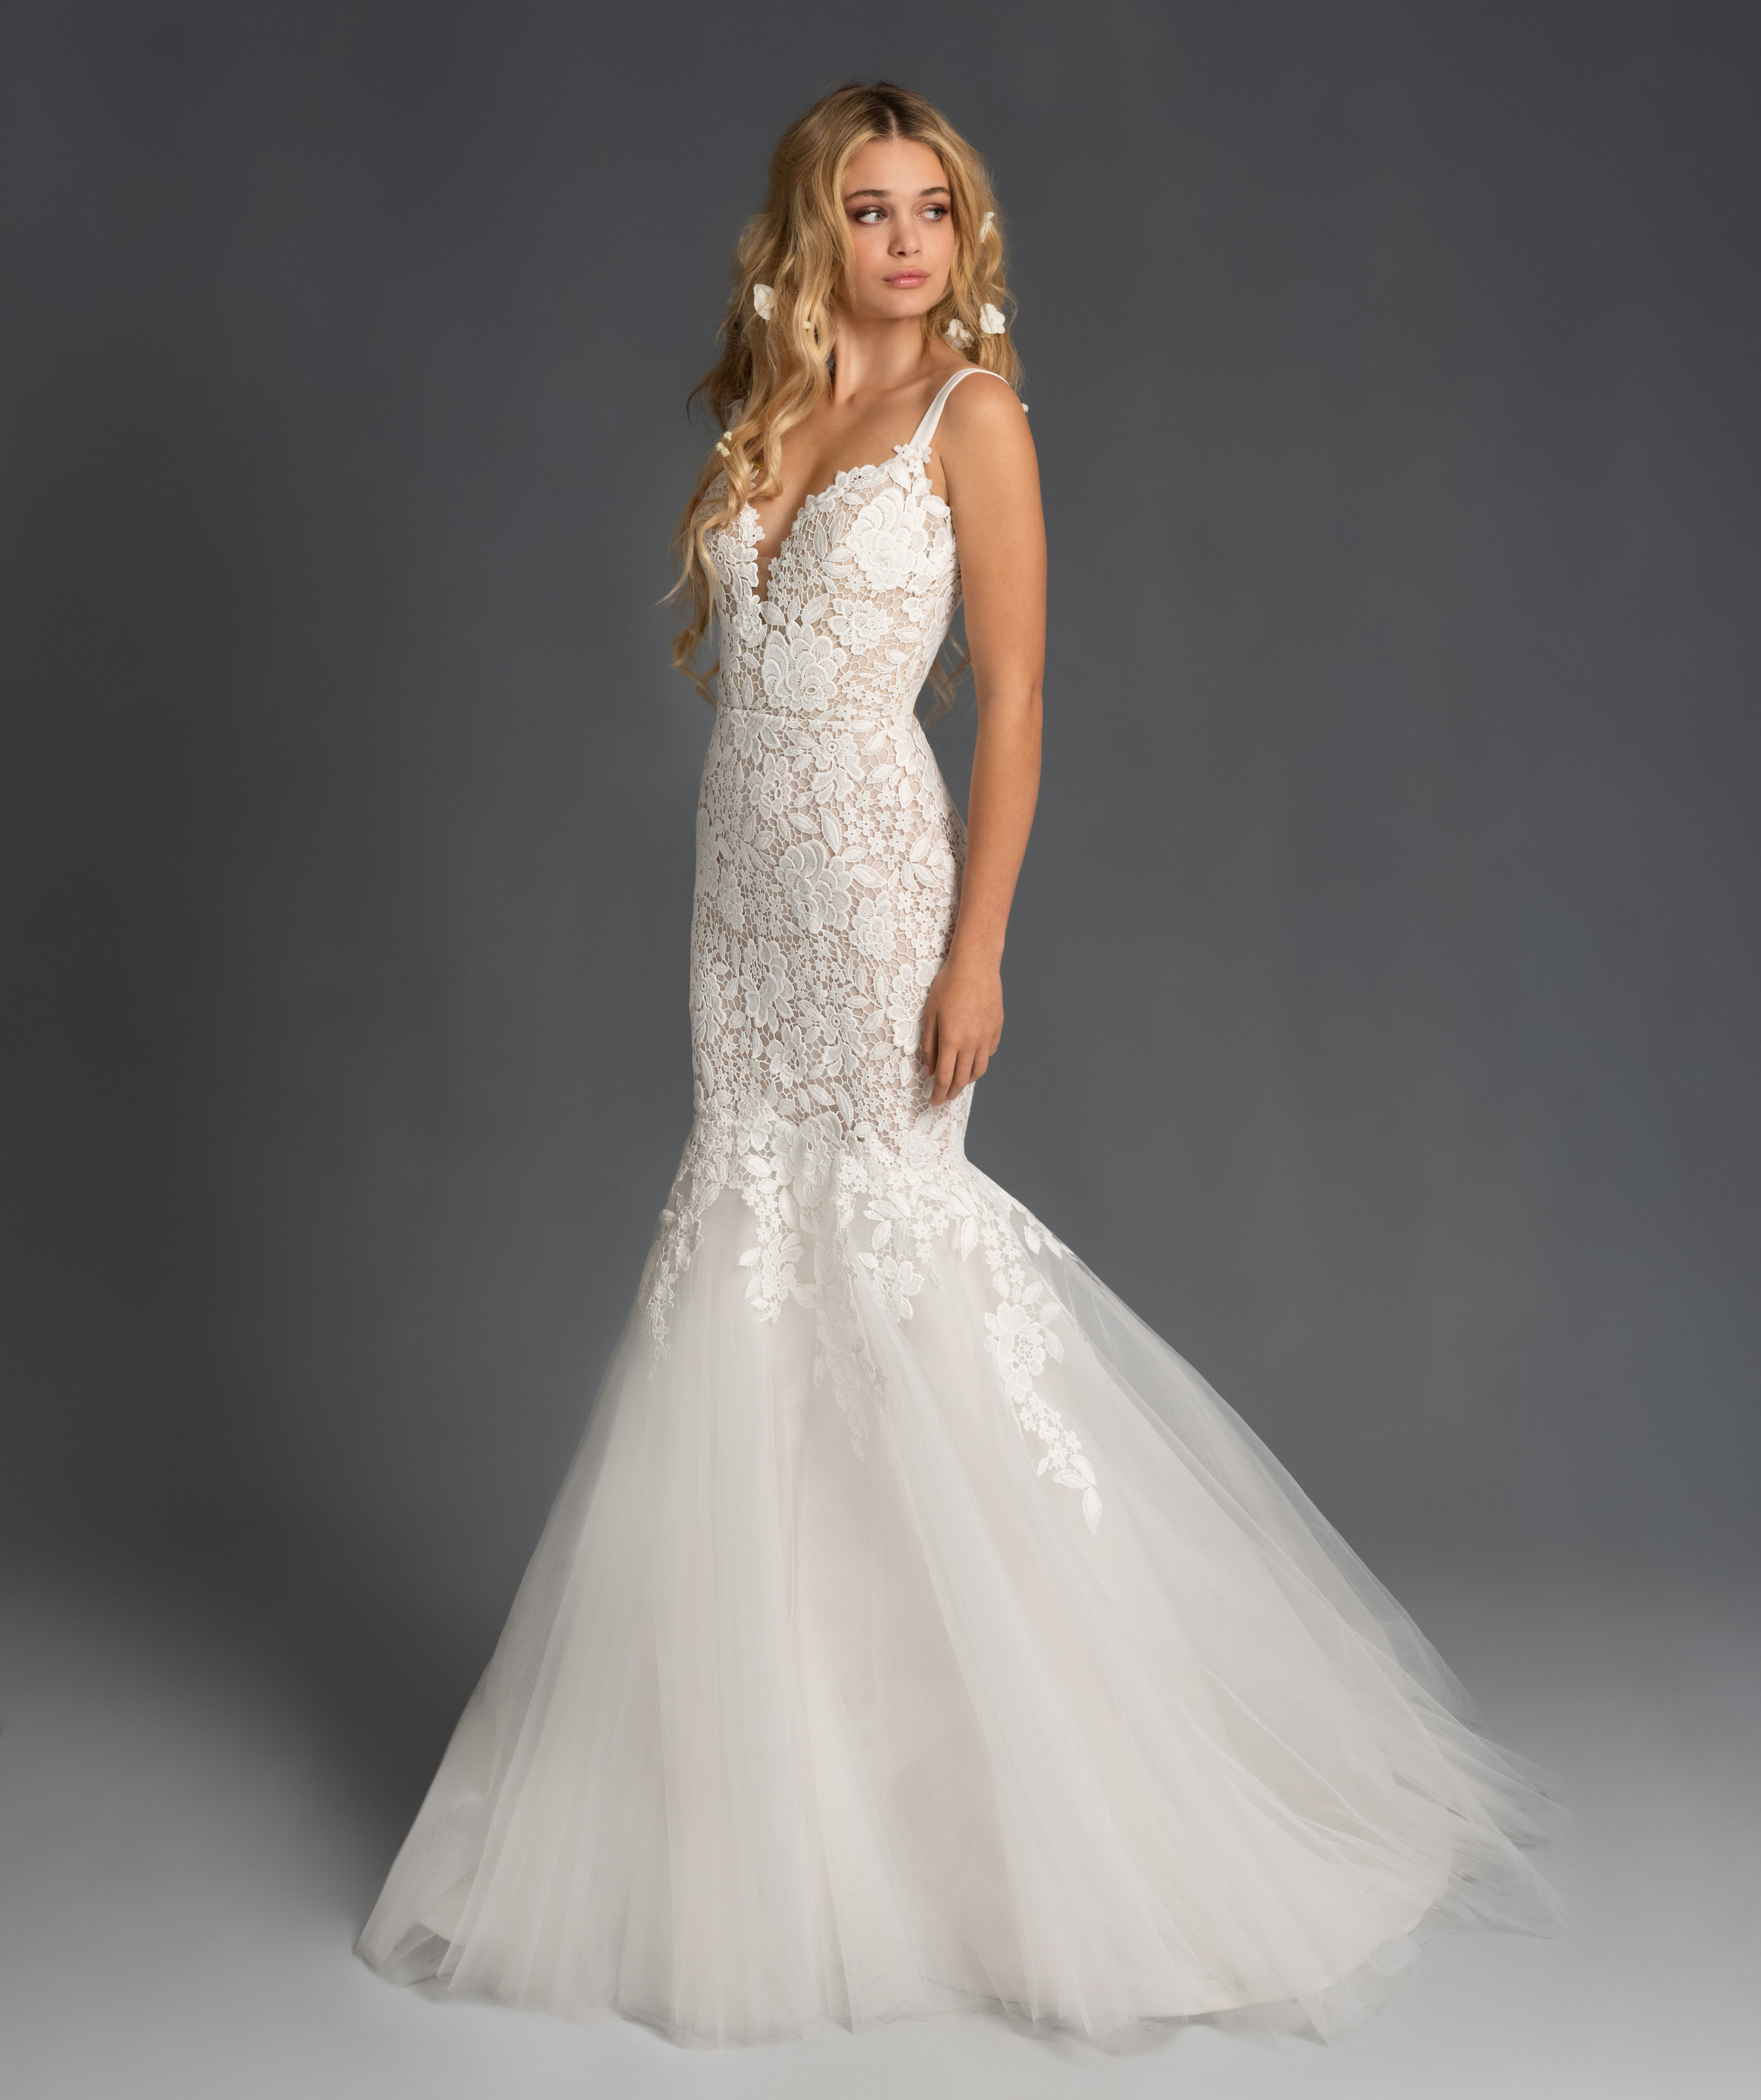 Sweetheart Neckline Lace Fit And Flare Tulle Wedding Dress